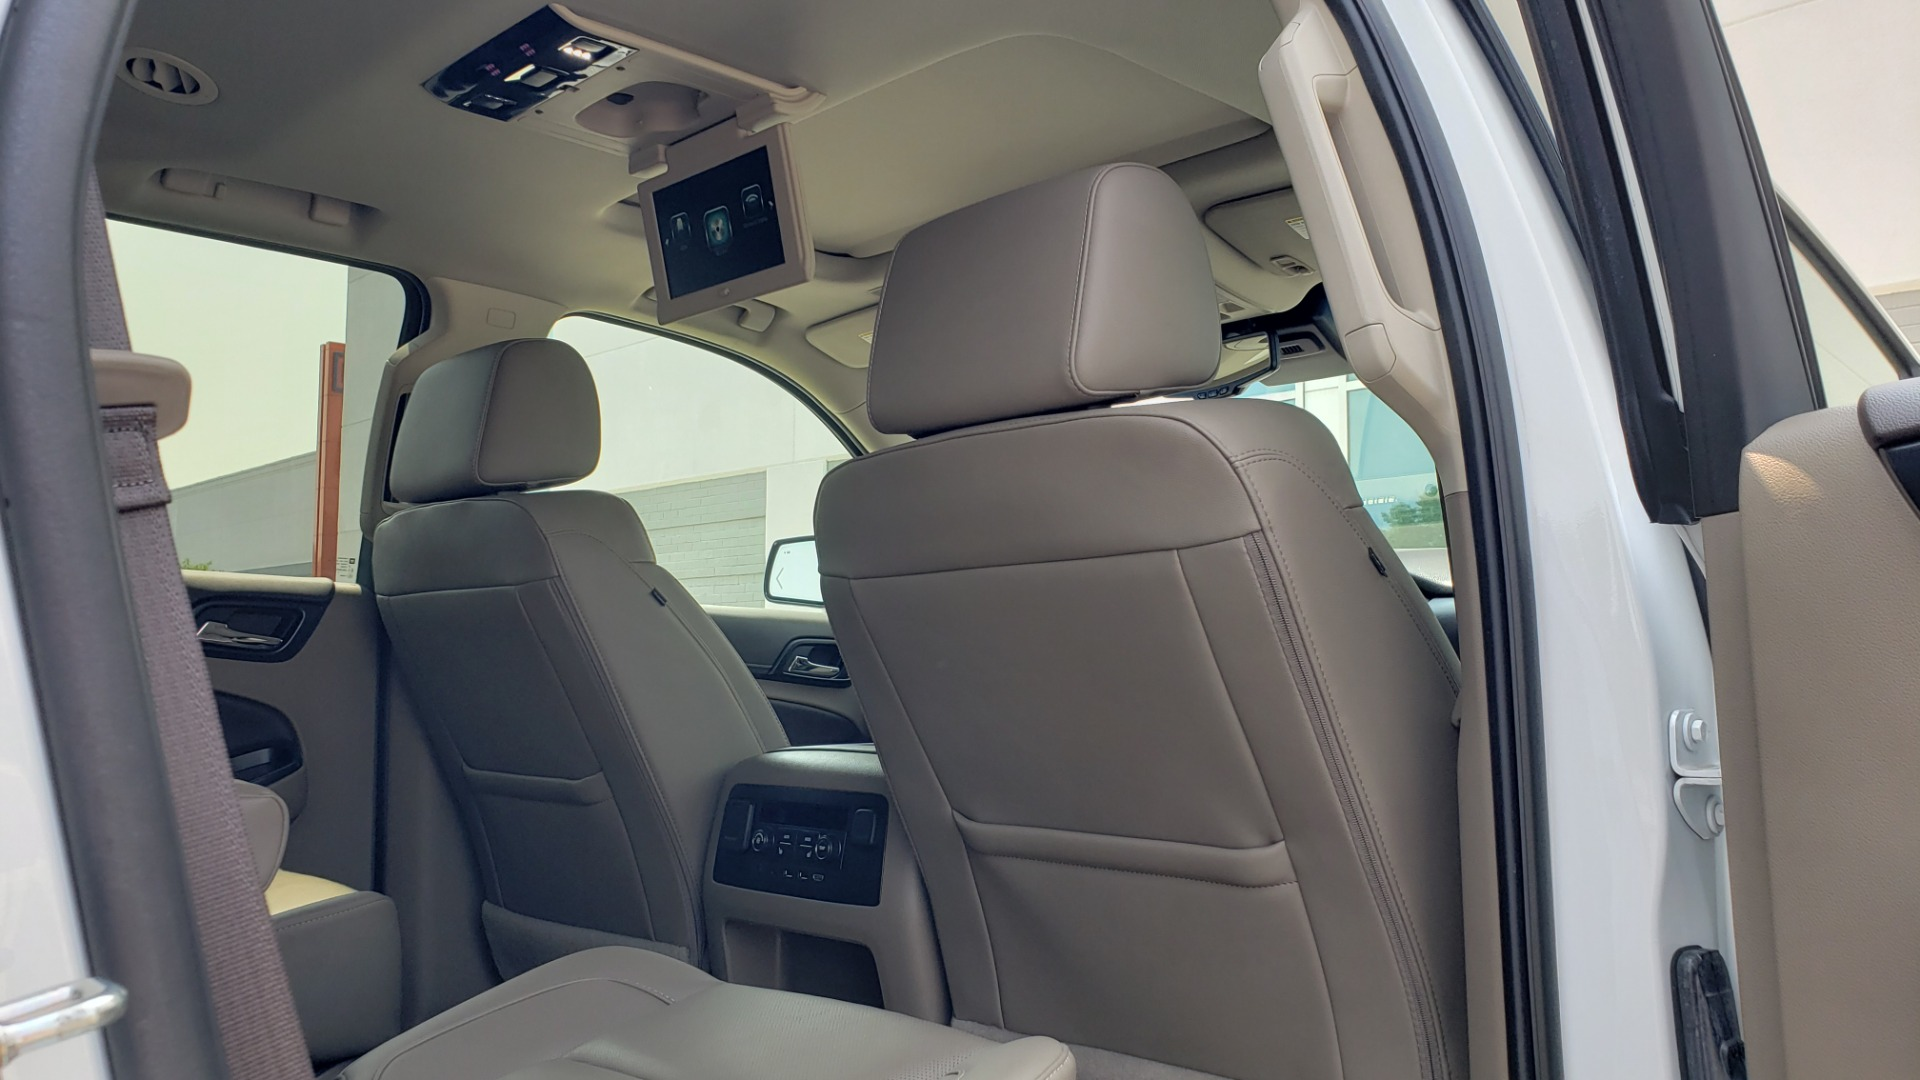 Used 2018 Chevrolet TAHOE PREMIER 4WD / NAV / SUNROOF / BOSE / 3-ROW / HUD / REARVIEW for sale $63,995 at Formula Imports in Charlotte NC 28227 77